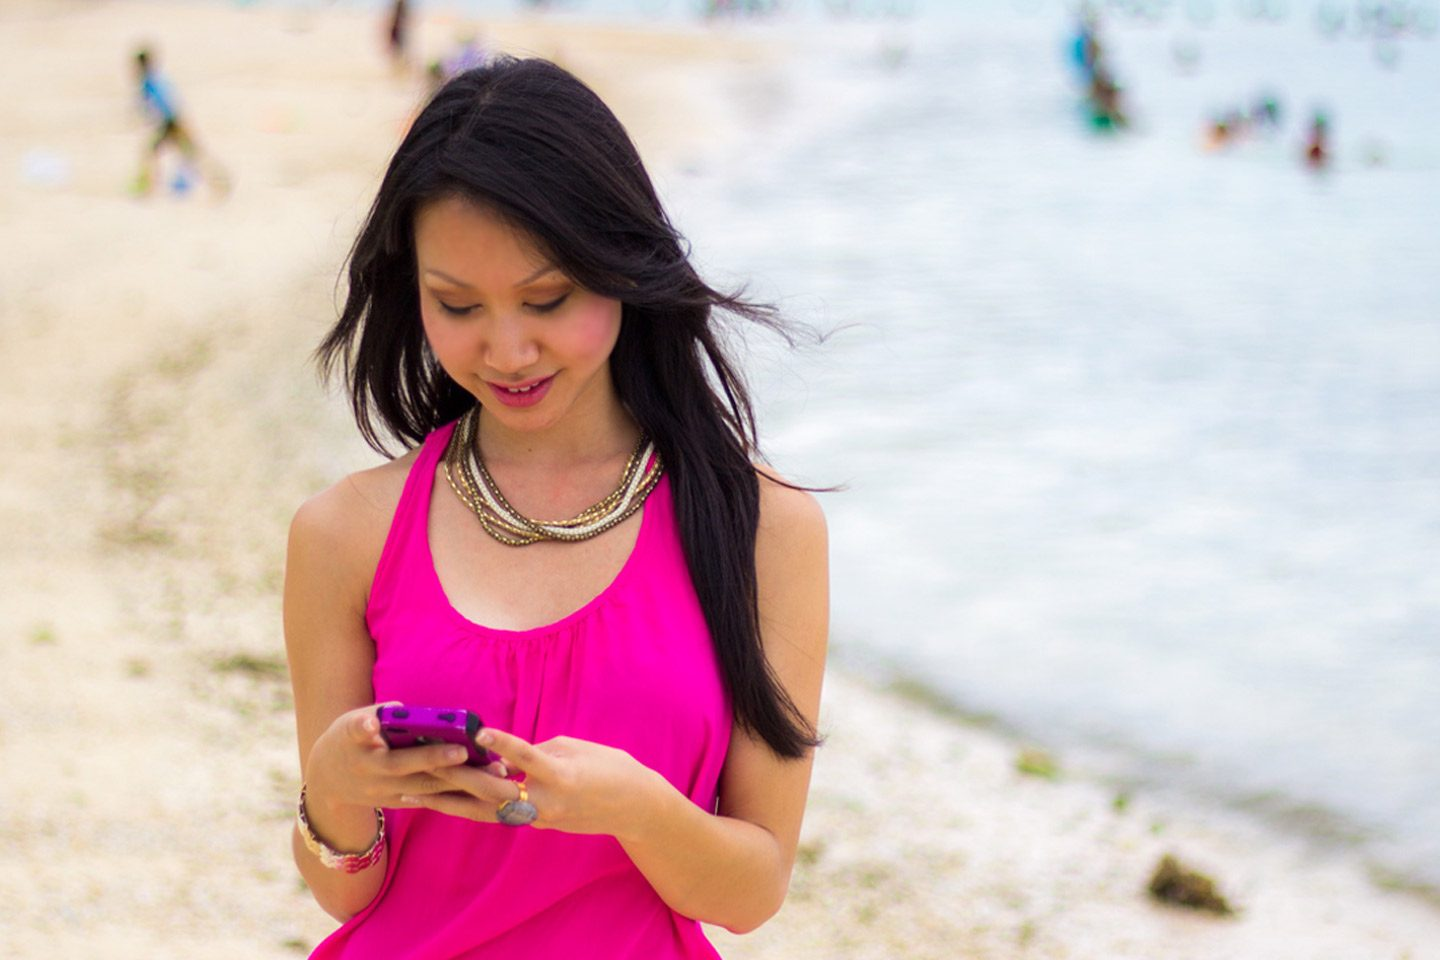 Asian woman holding cell phone and smiling on the beach